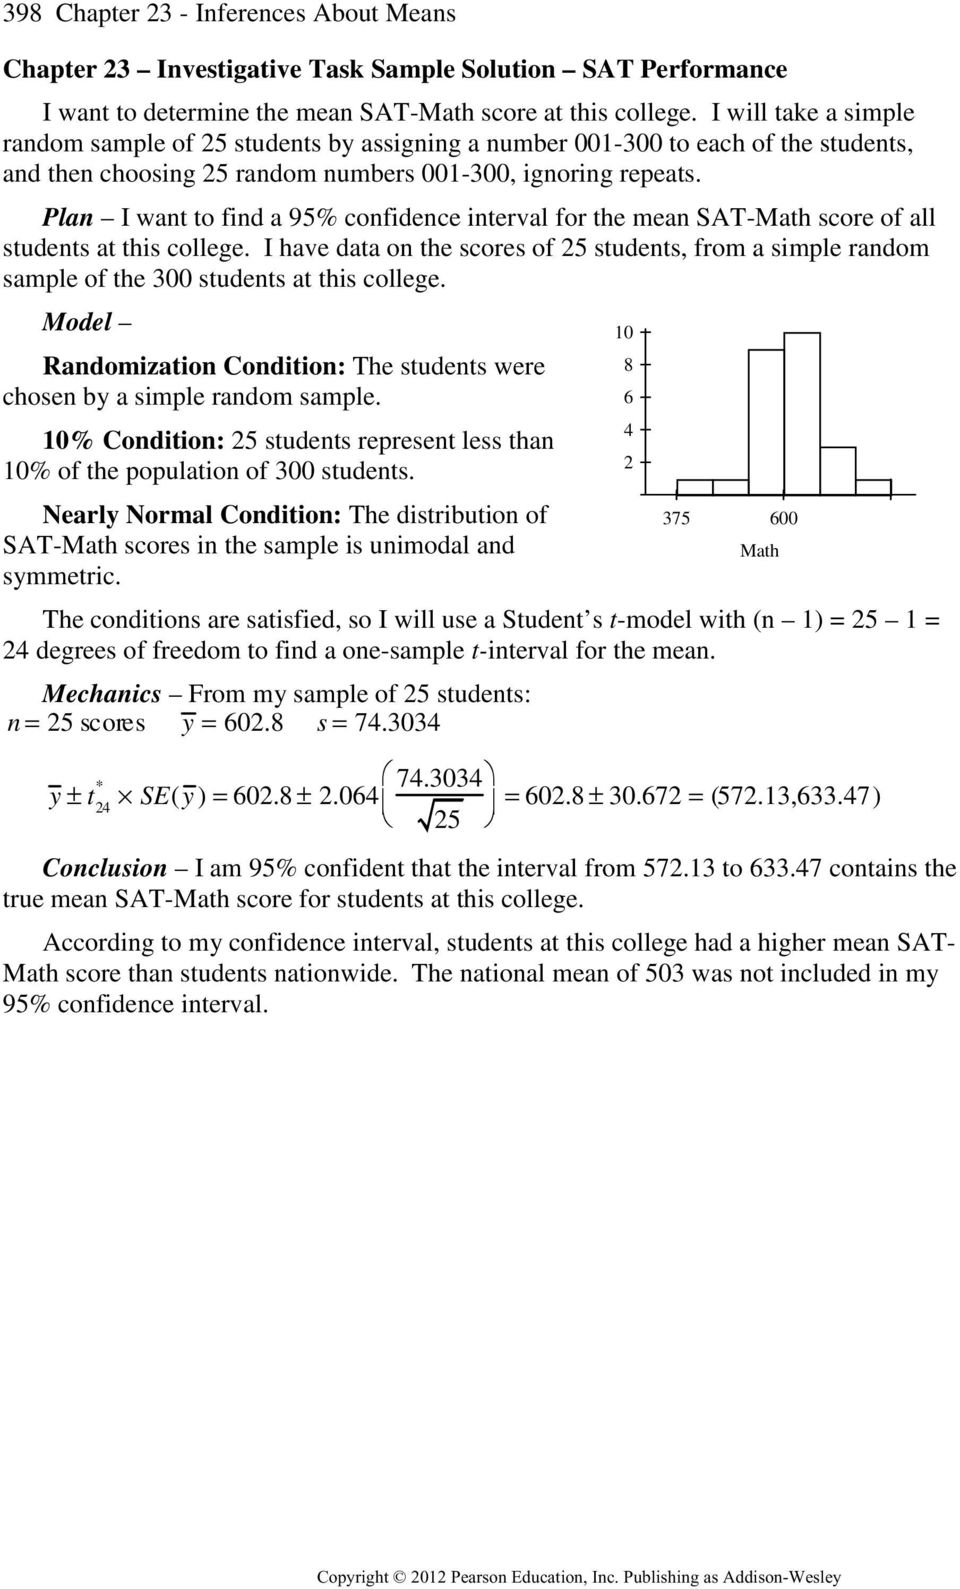 Plan I want to find a 95% confidence interval for the mean SAT-Math score of all students at this college.